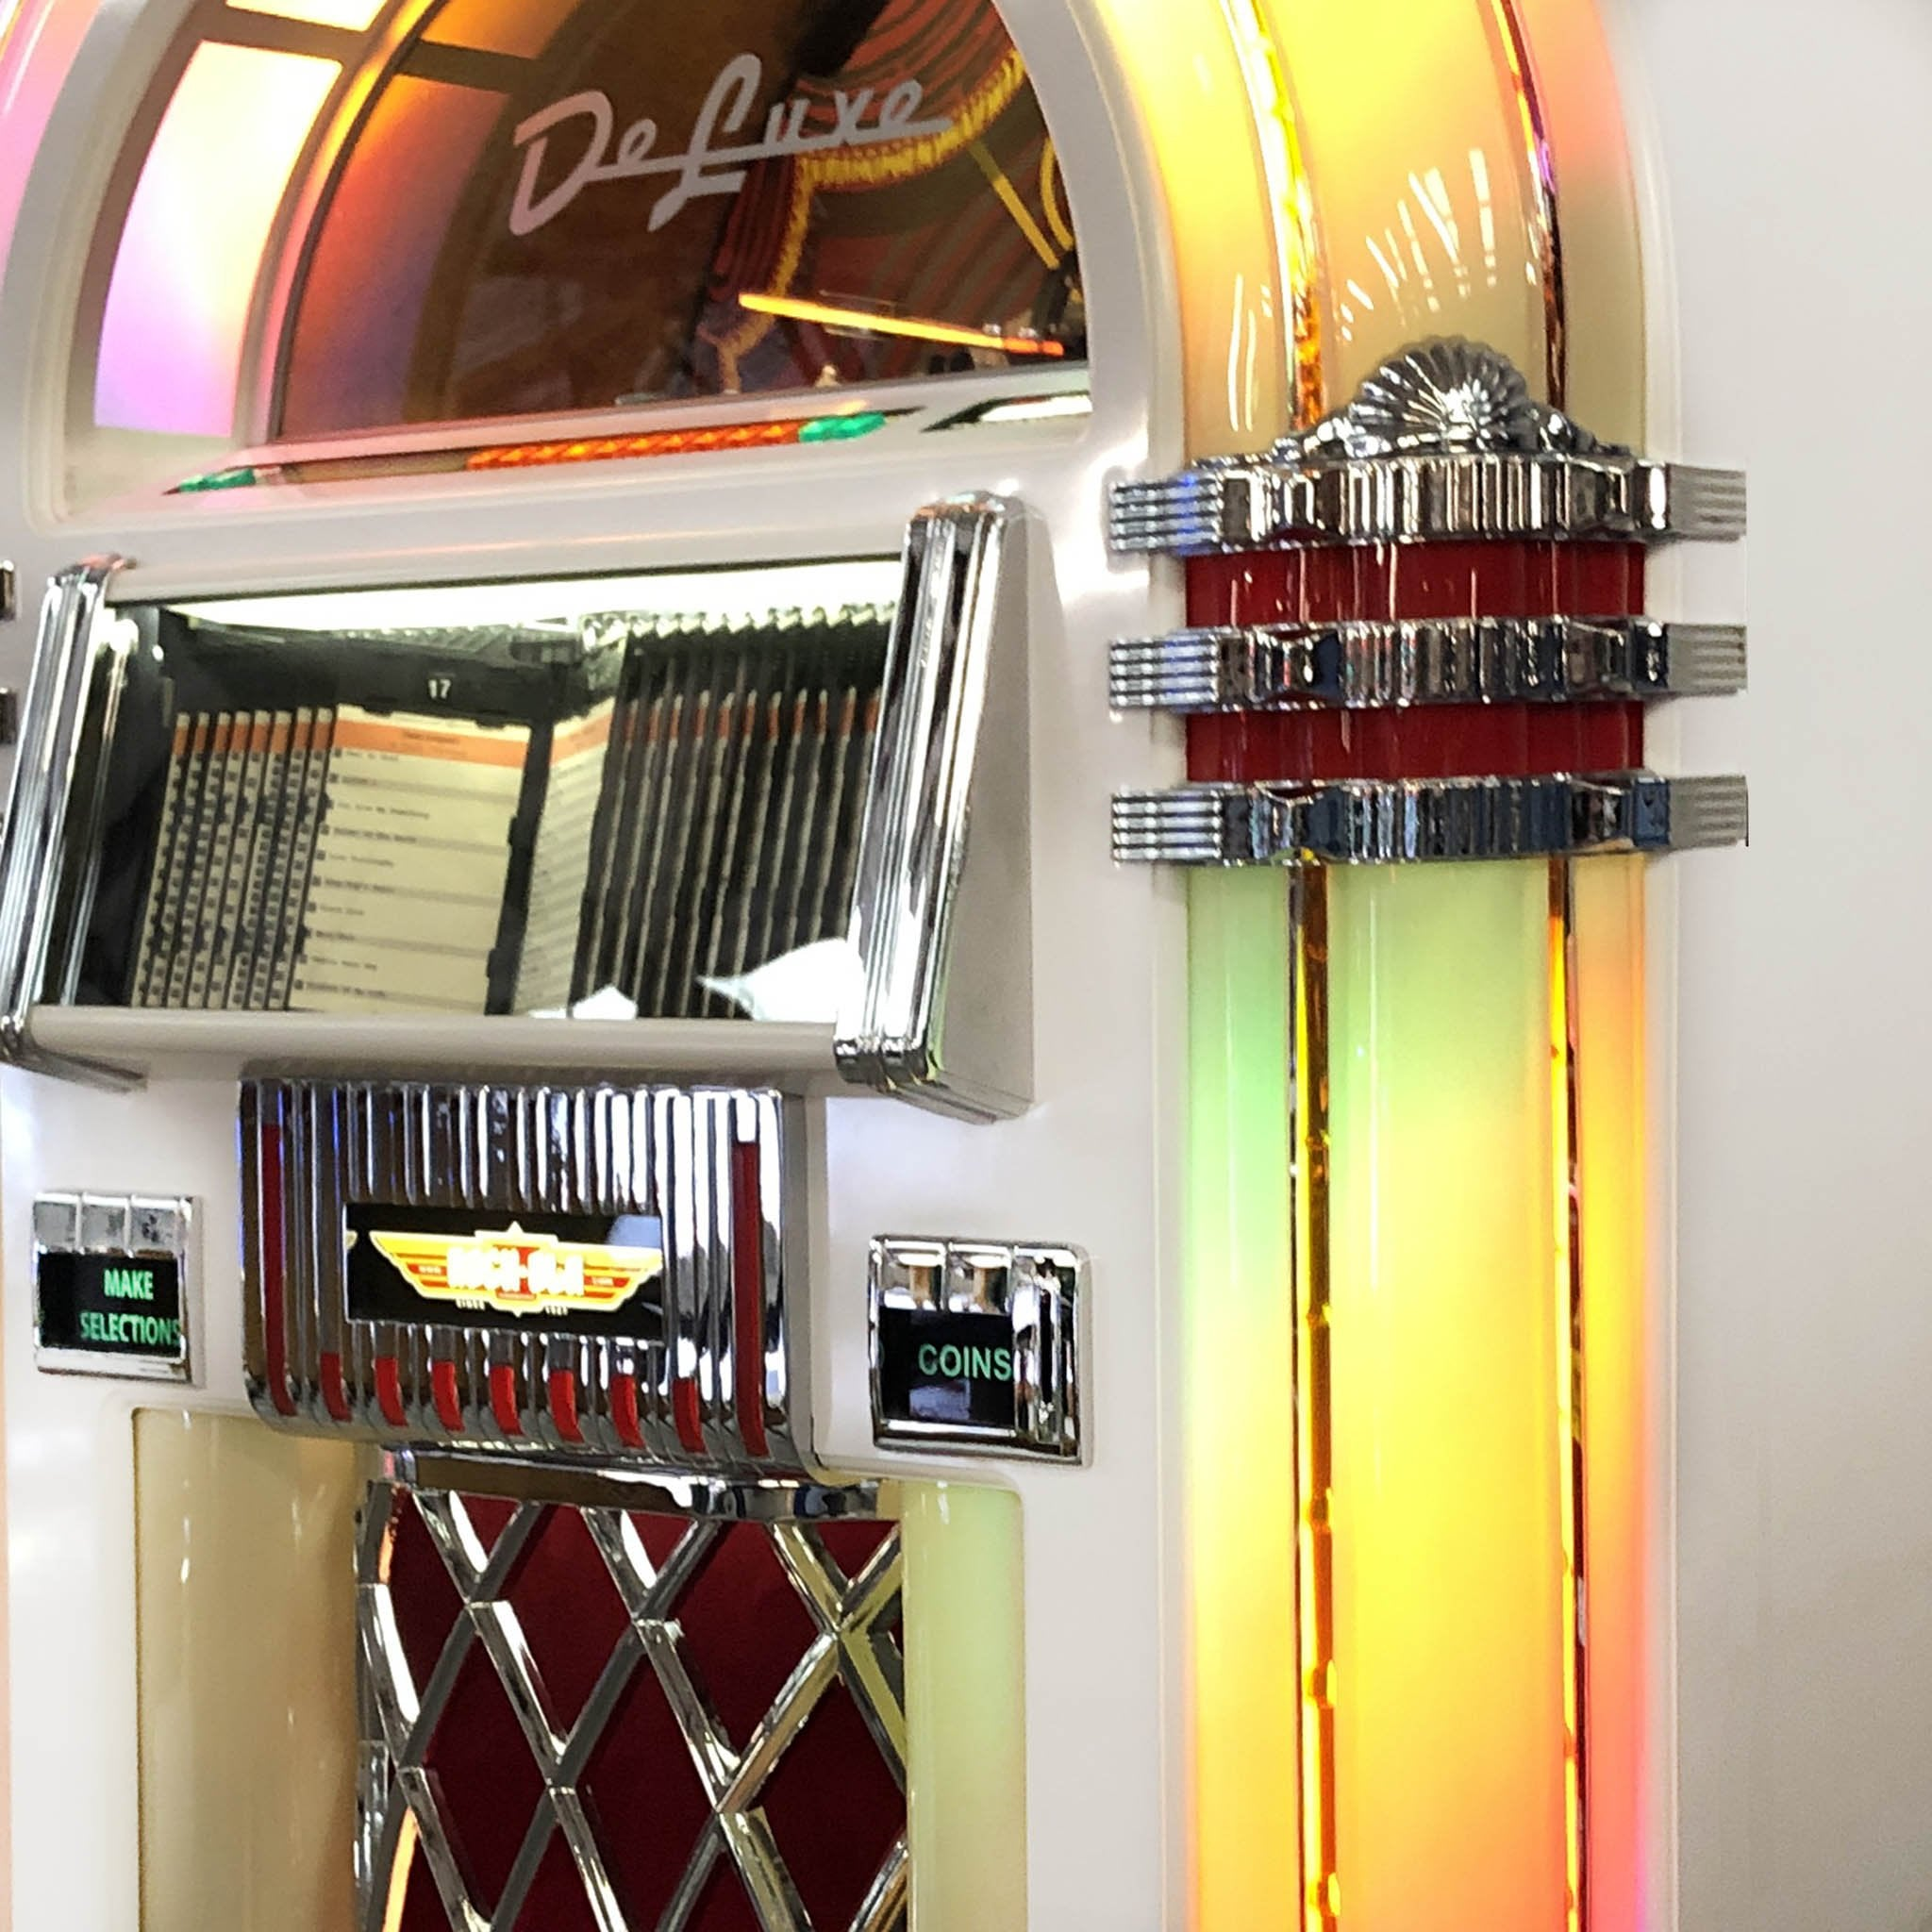 Rock-Ola Bubbler CD Jukebox in Gloss White